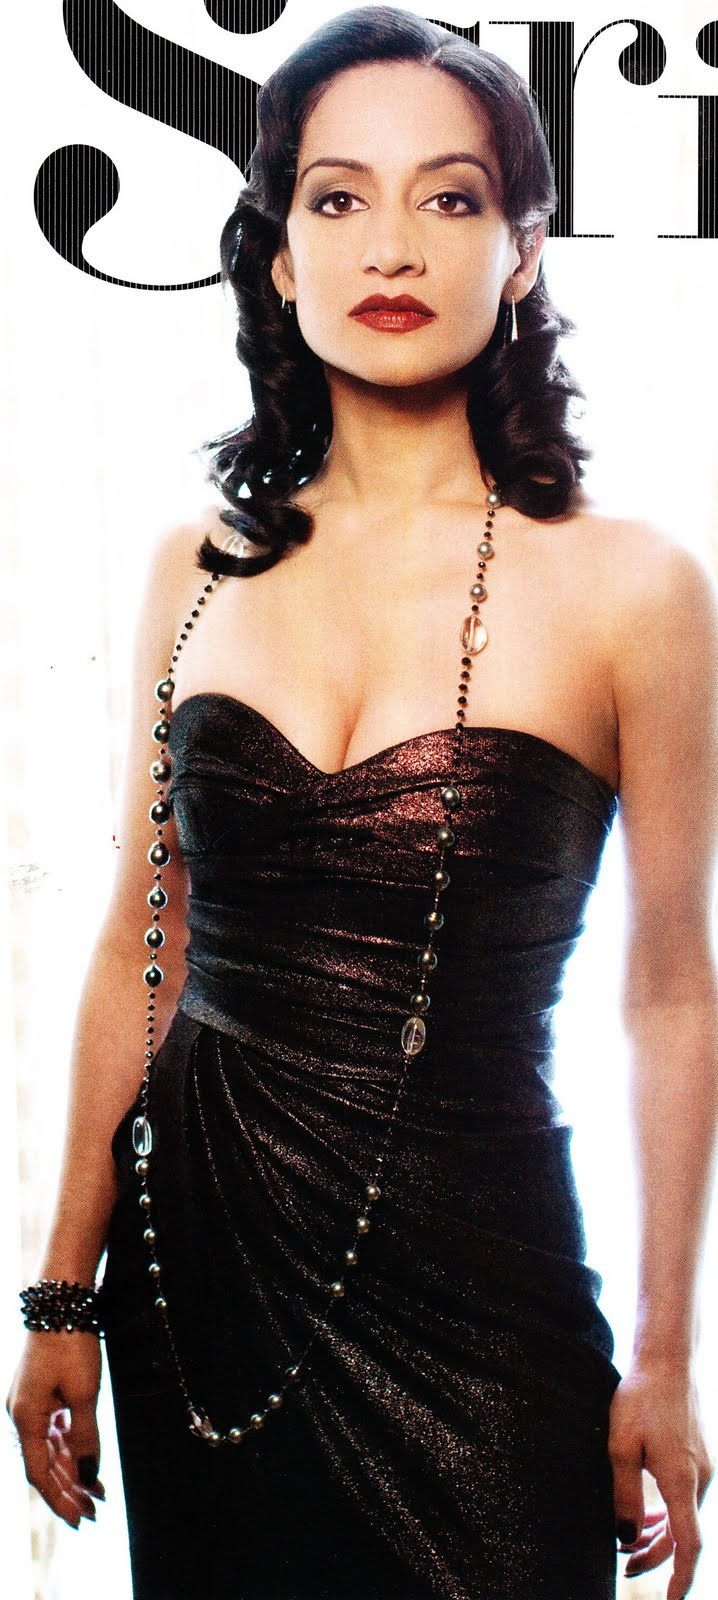 Television actress Archie Panjabi.   She's boss on The Good Wife!!